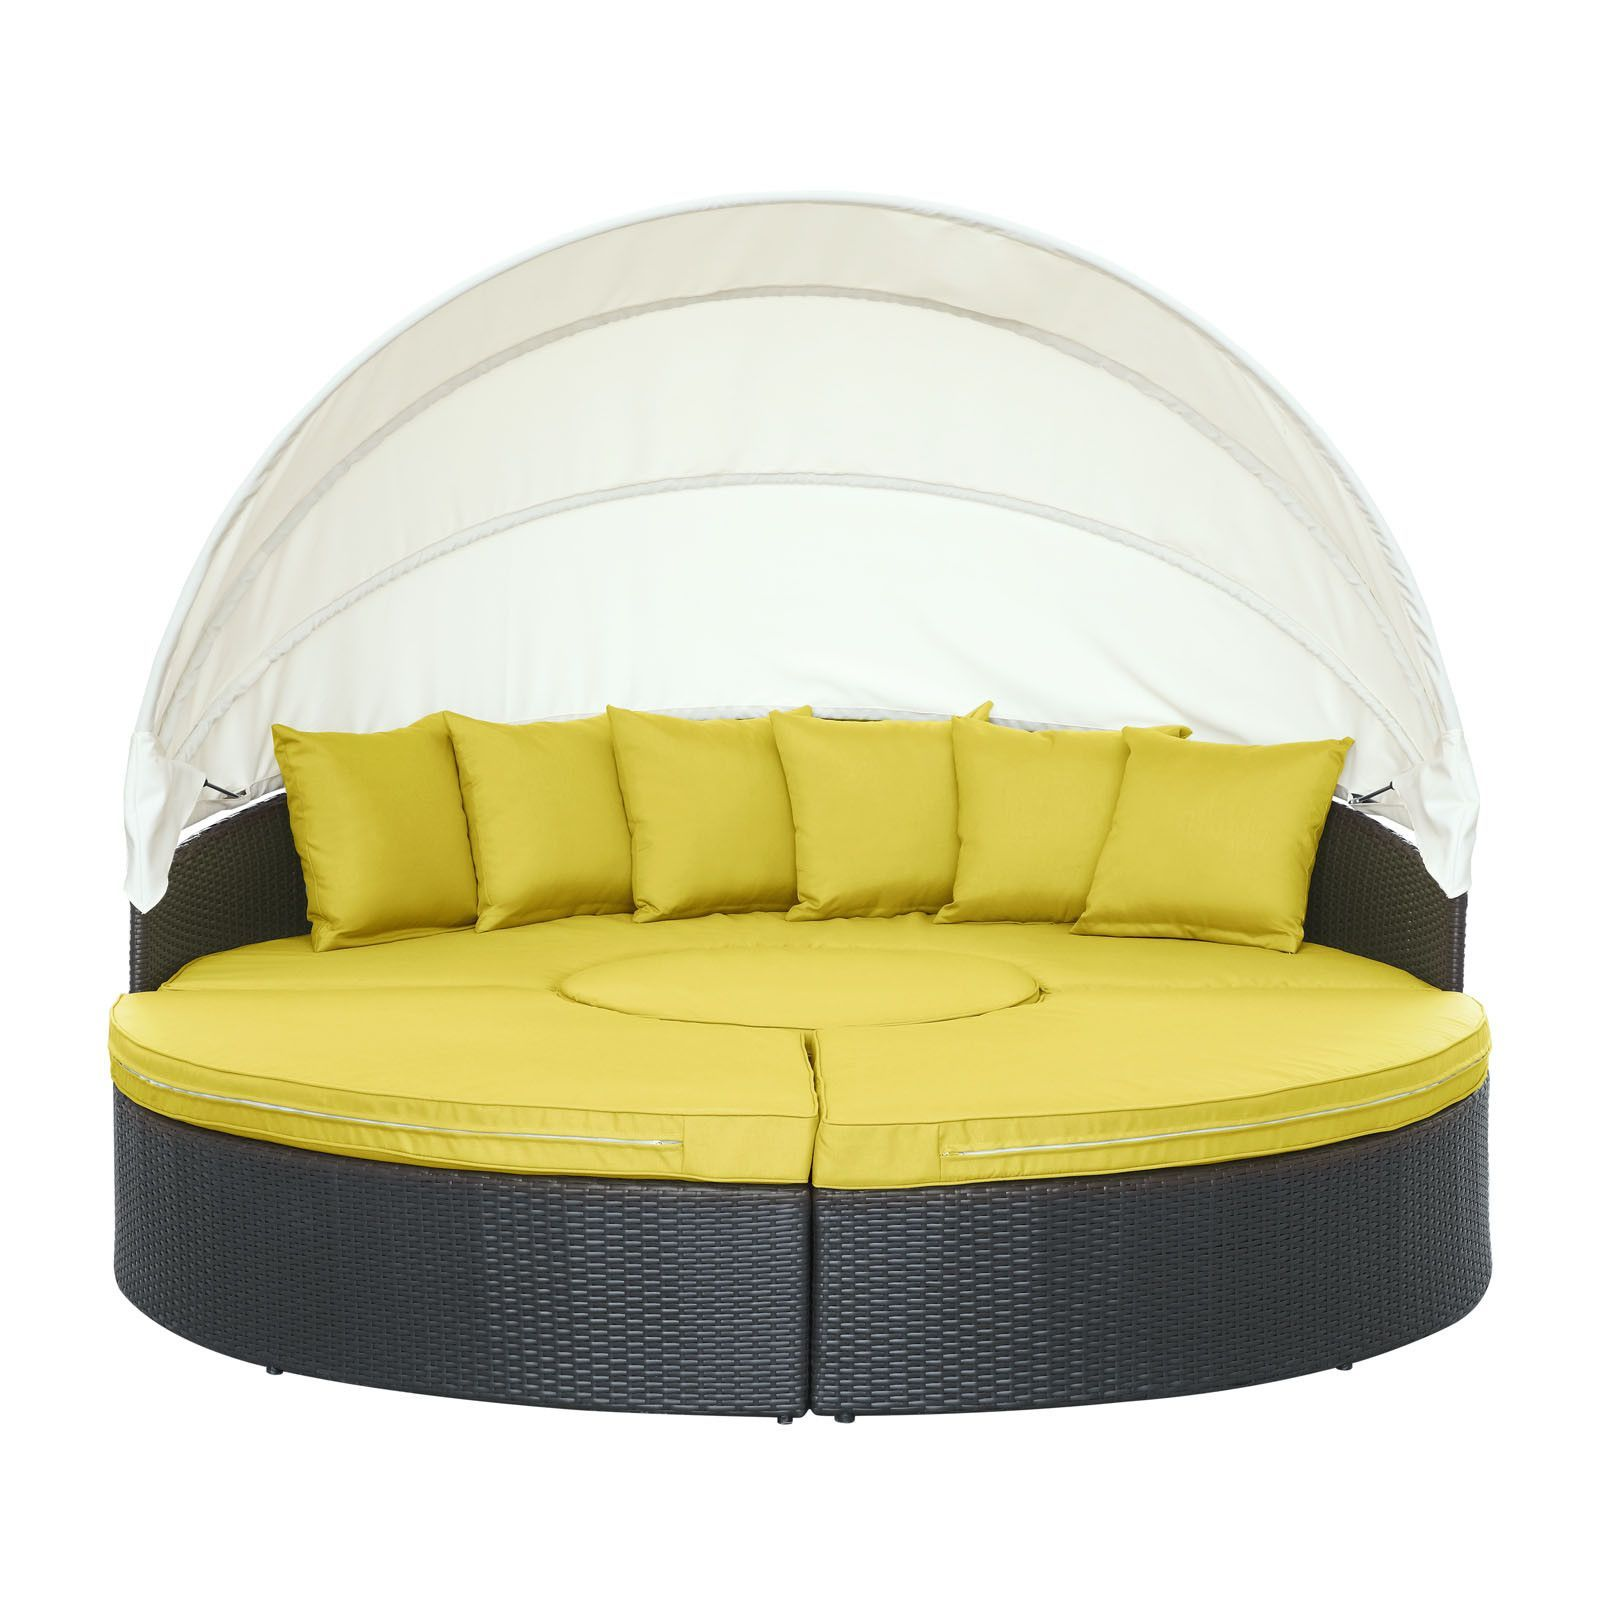 shade canopy daybed for the home outdoor daybed patio daybed rh pinterest com